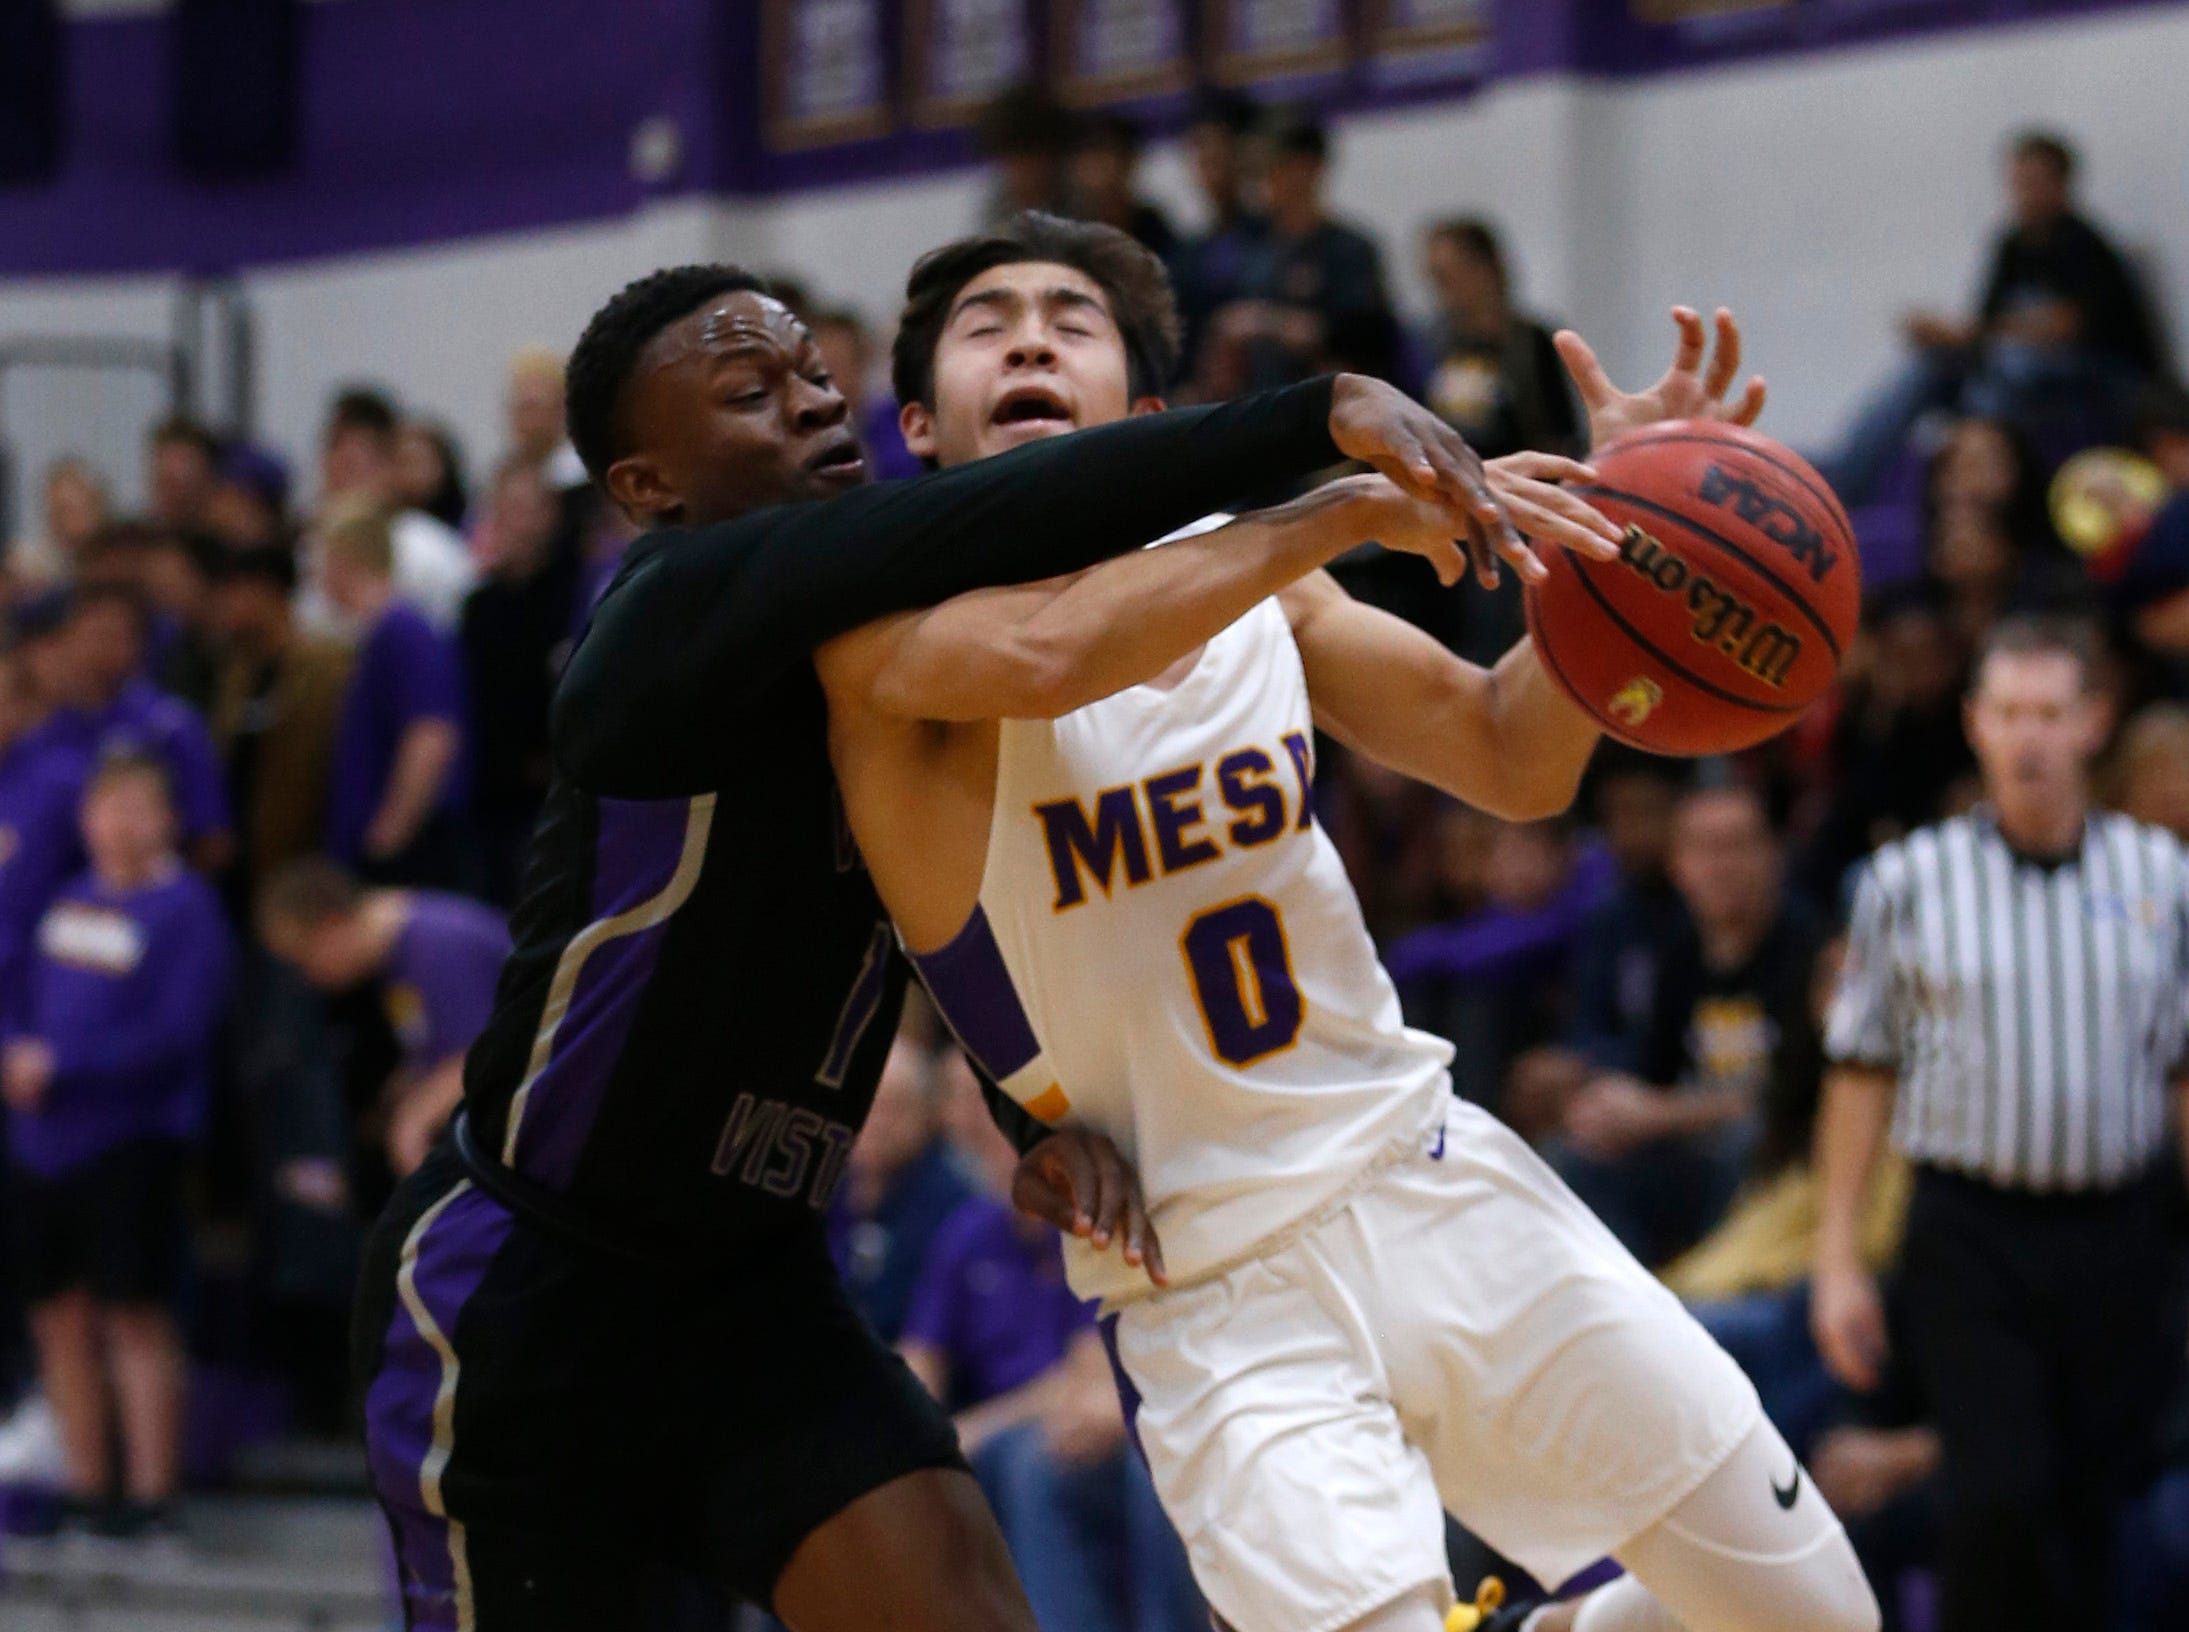 Valley Vista's Sidney Thomas (1) knocks the ball loose from Mesa's Tony Adame (0) during the first half of the boys basketball tournament play-in game at Mesa High School in Mesa, Ariz. on February 8, 2019.